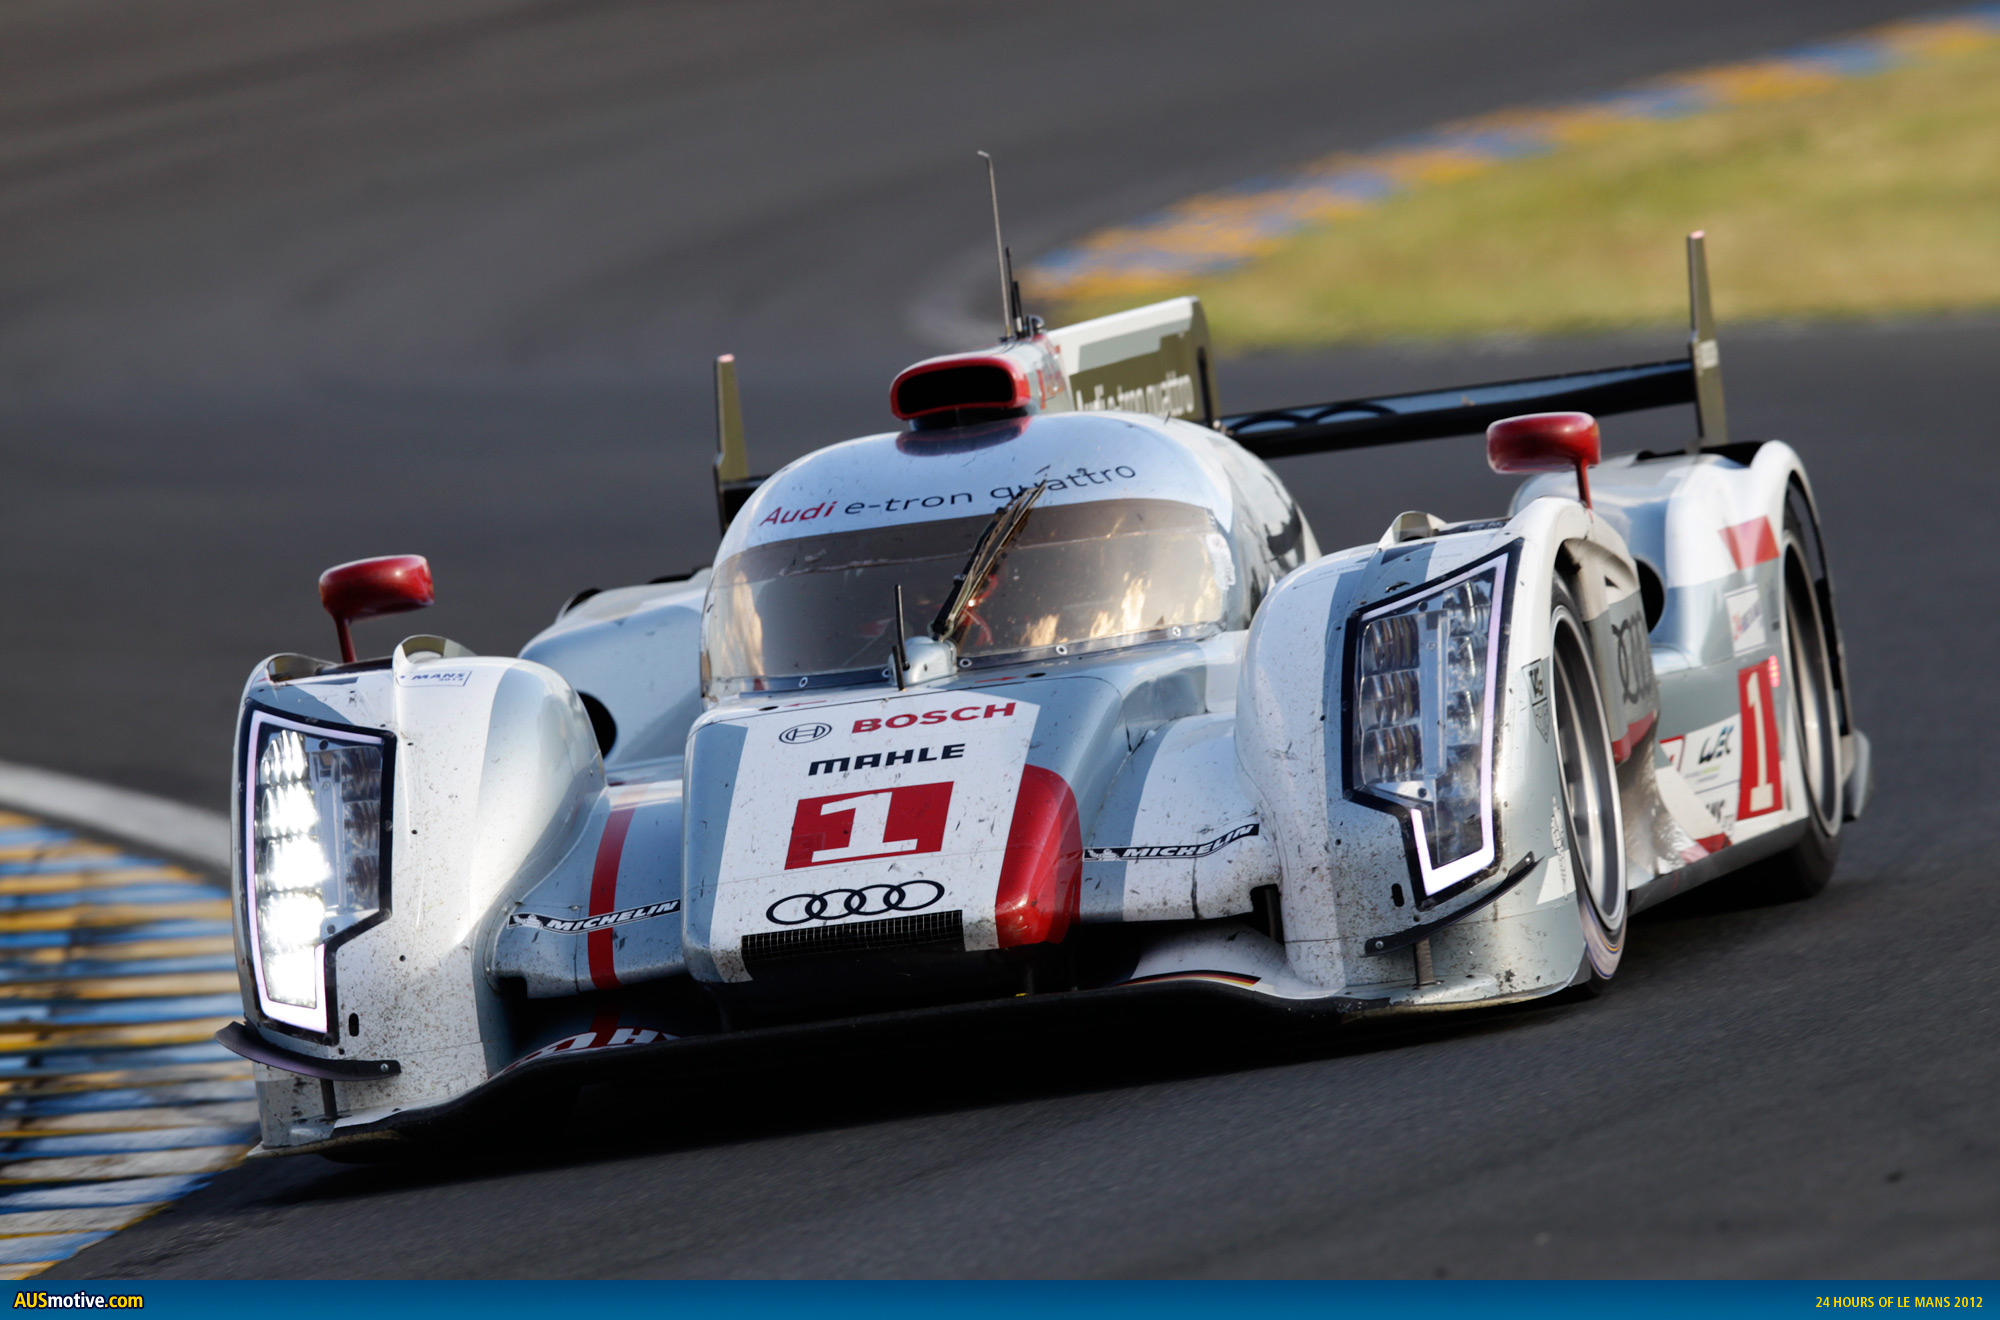 In 2012 Audi became the first team to win using Hybrid power.